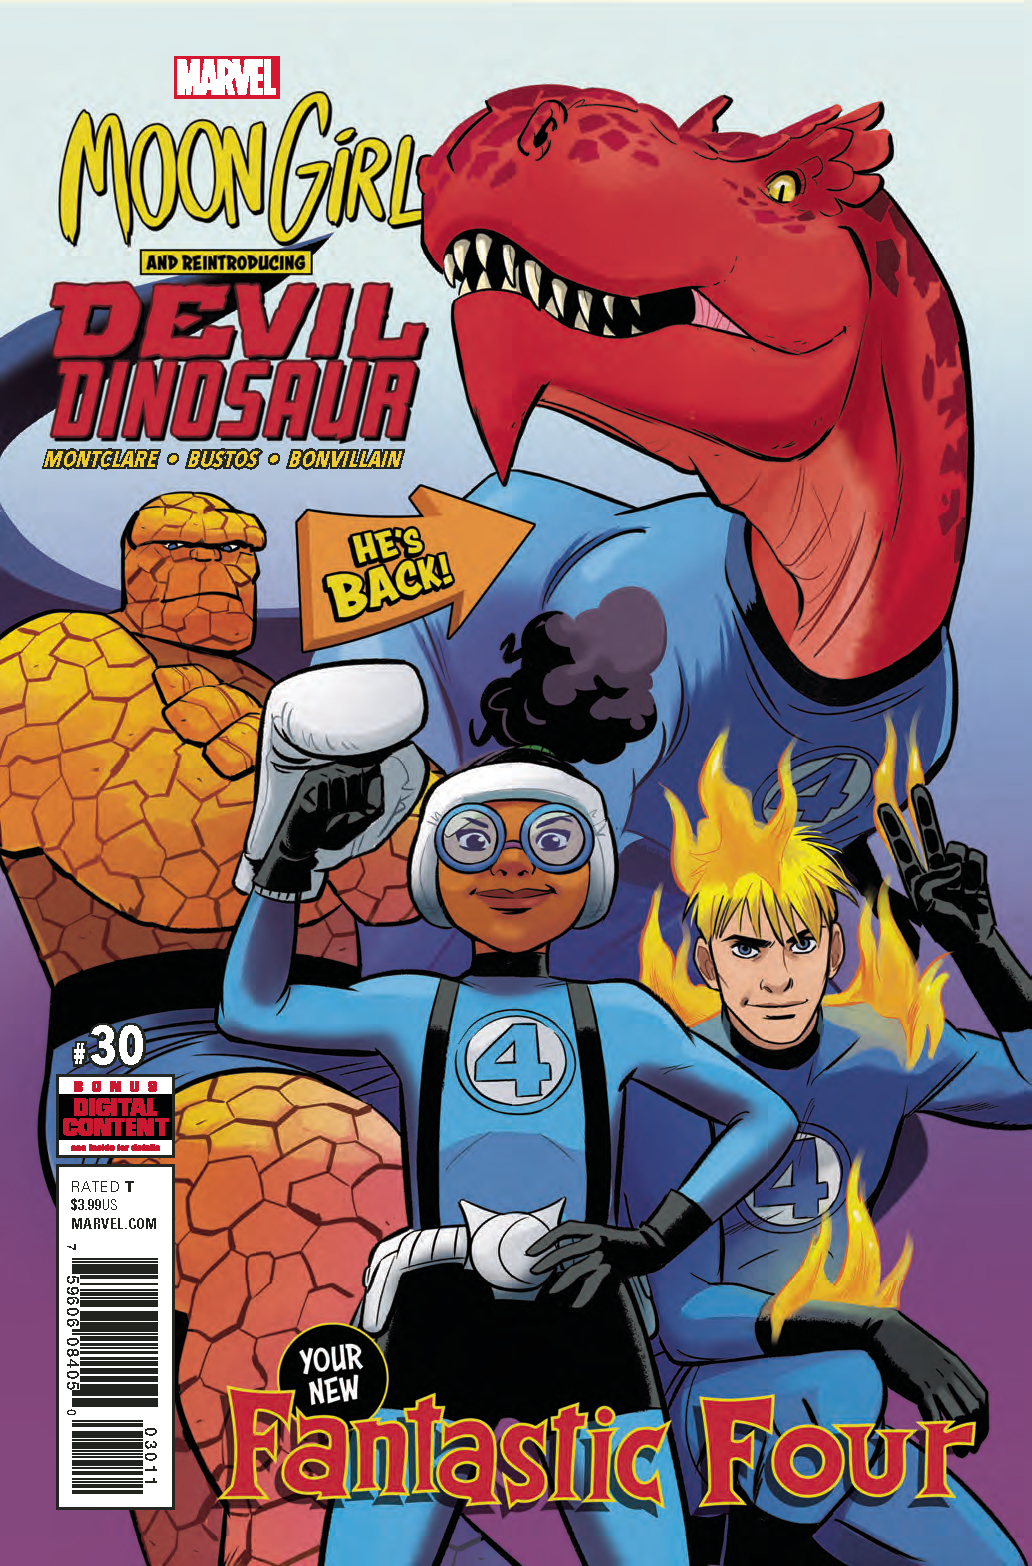 MOON GIRL AND DEVIL DINOSAUR #30 LEG